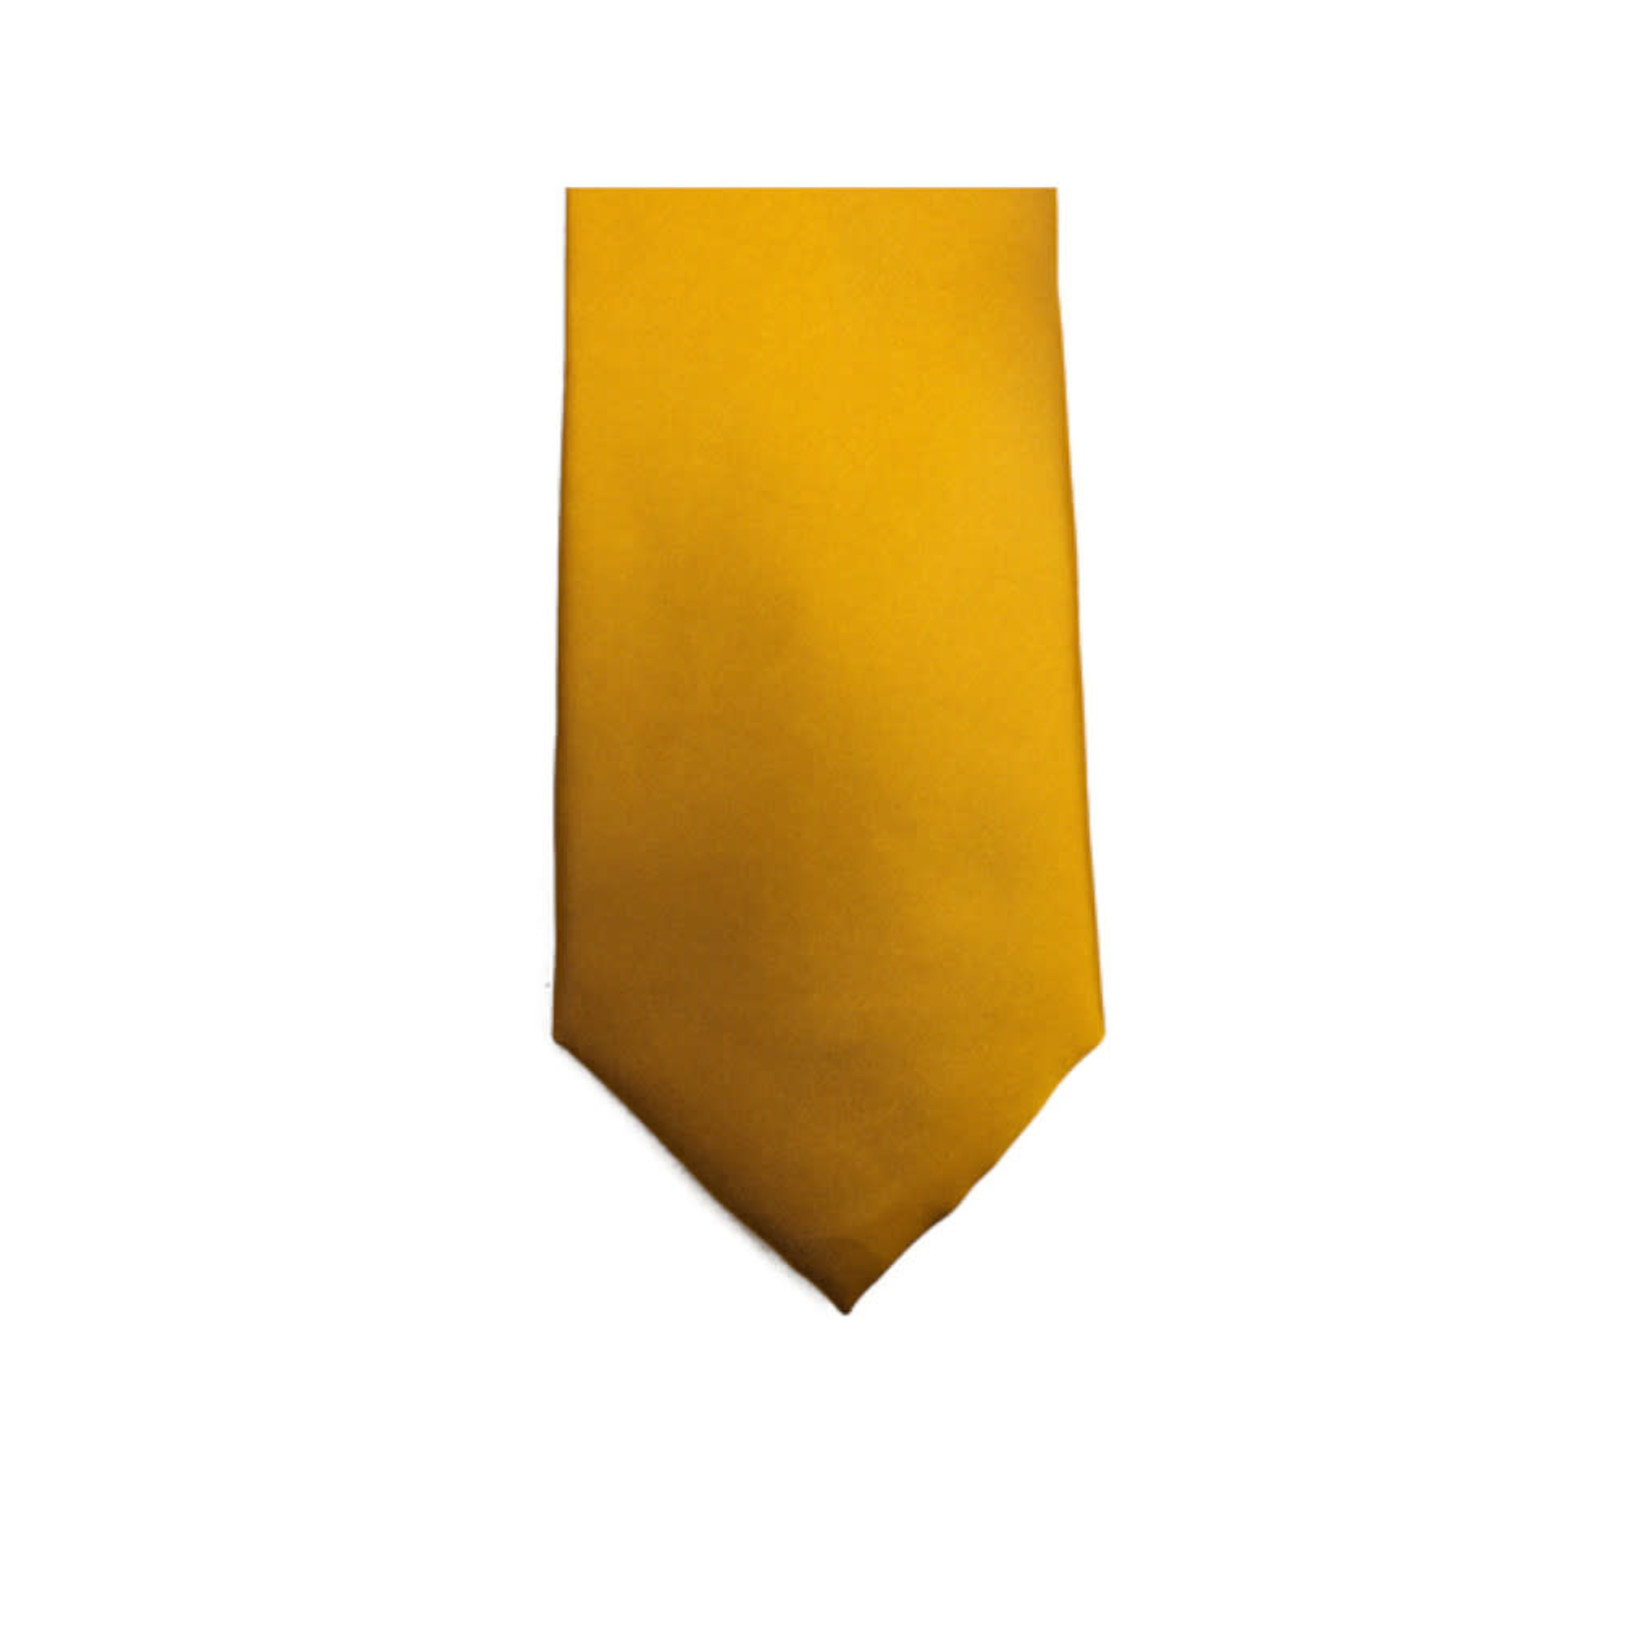 Knotz M100-57 Solid Gold Tie